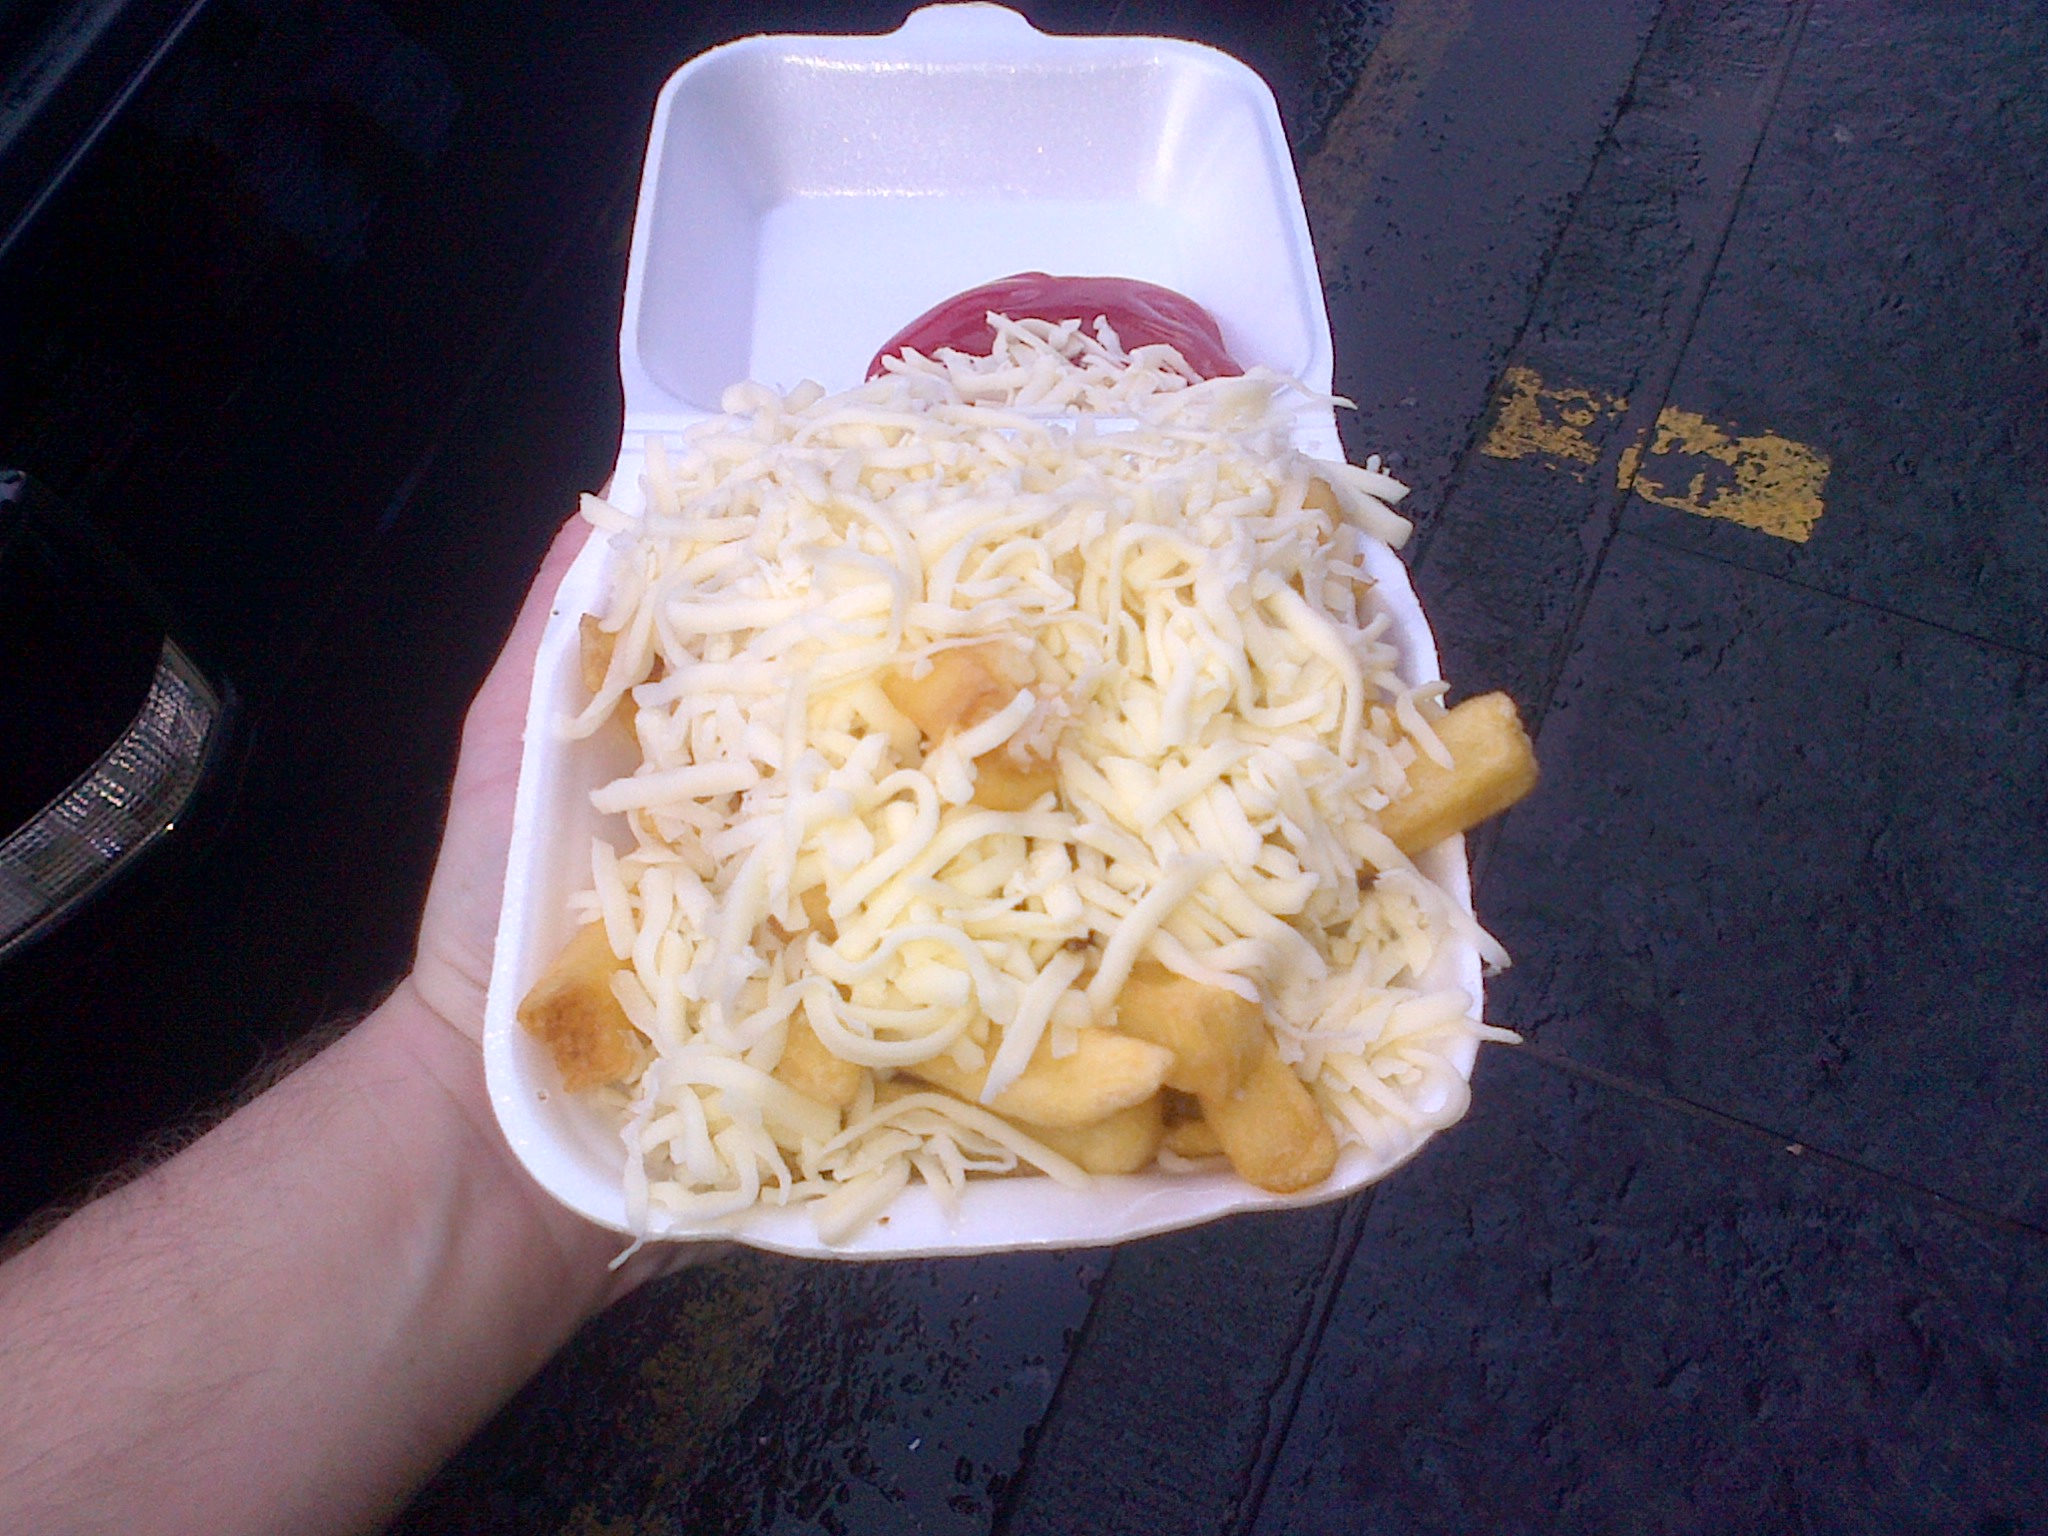 Chips n cheese